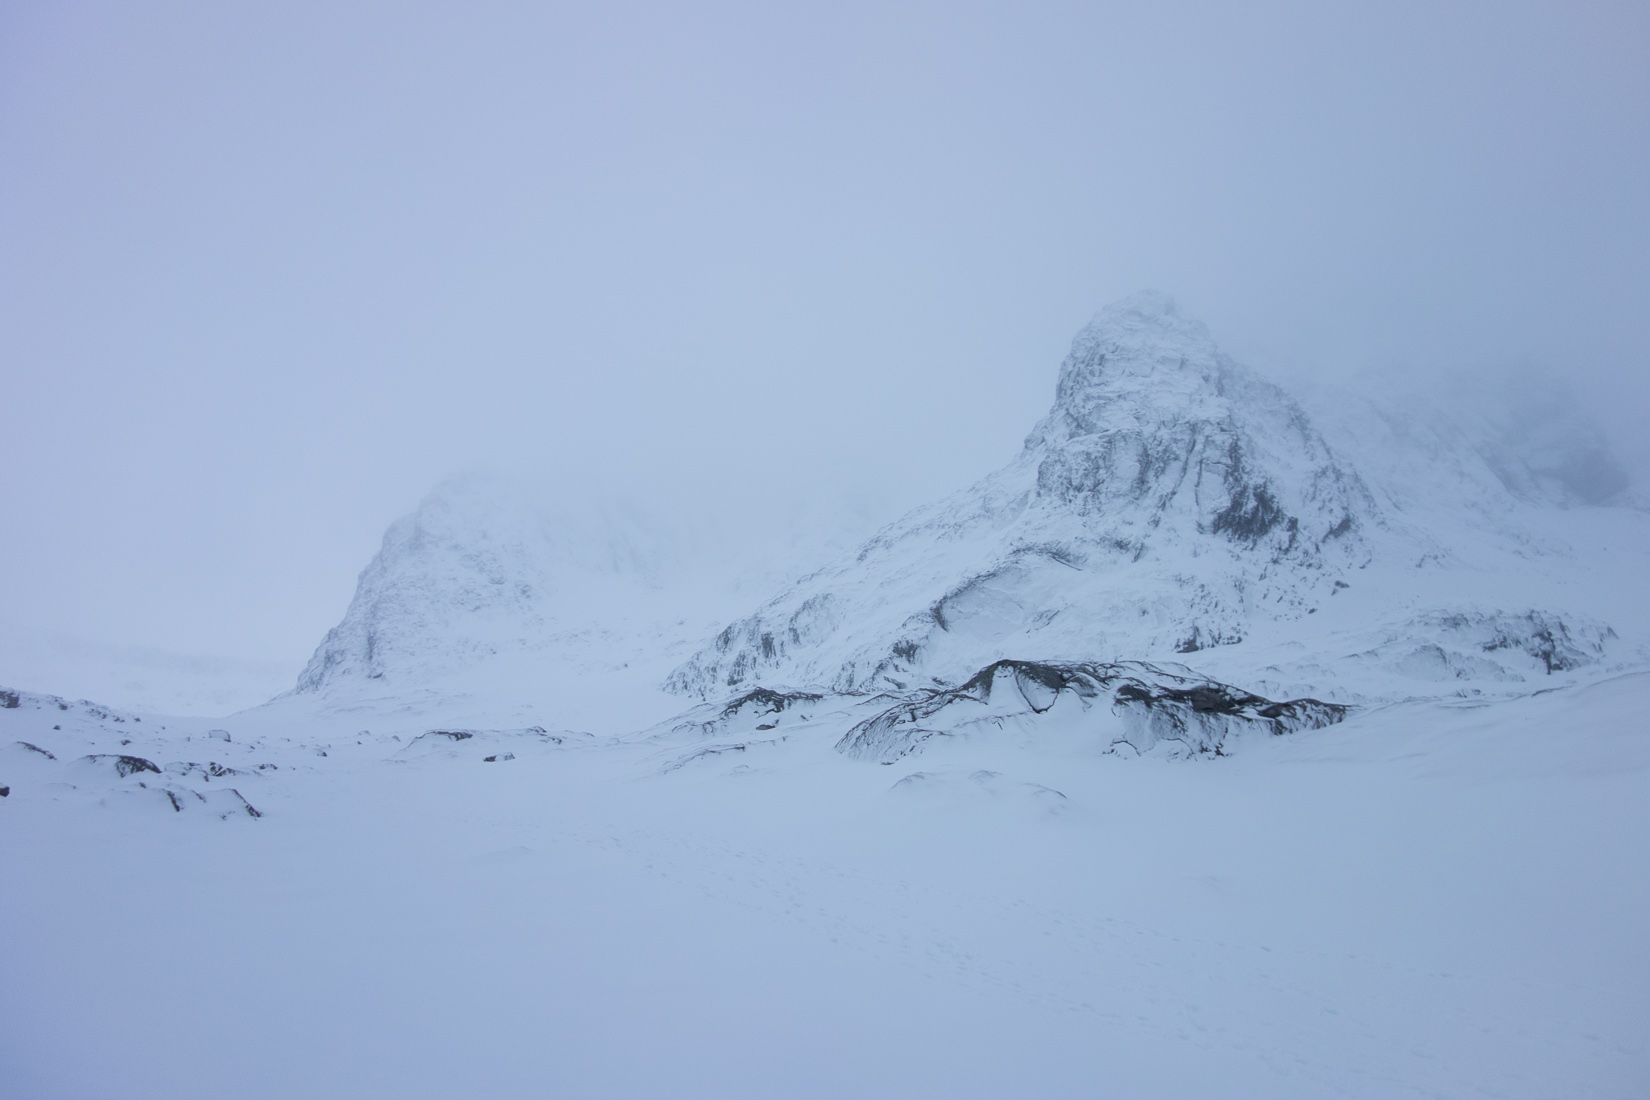 The view from the CIC hut